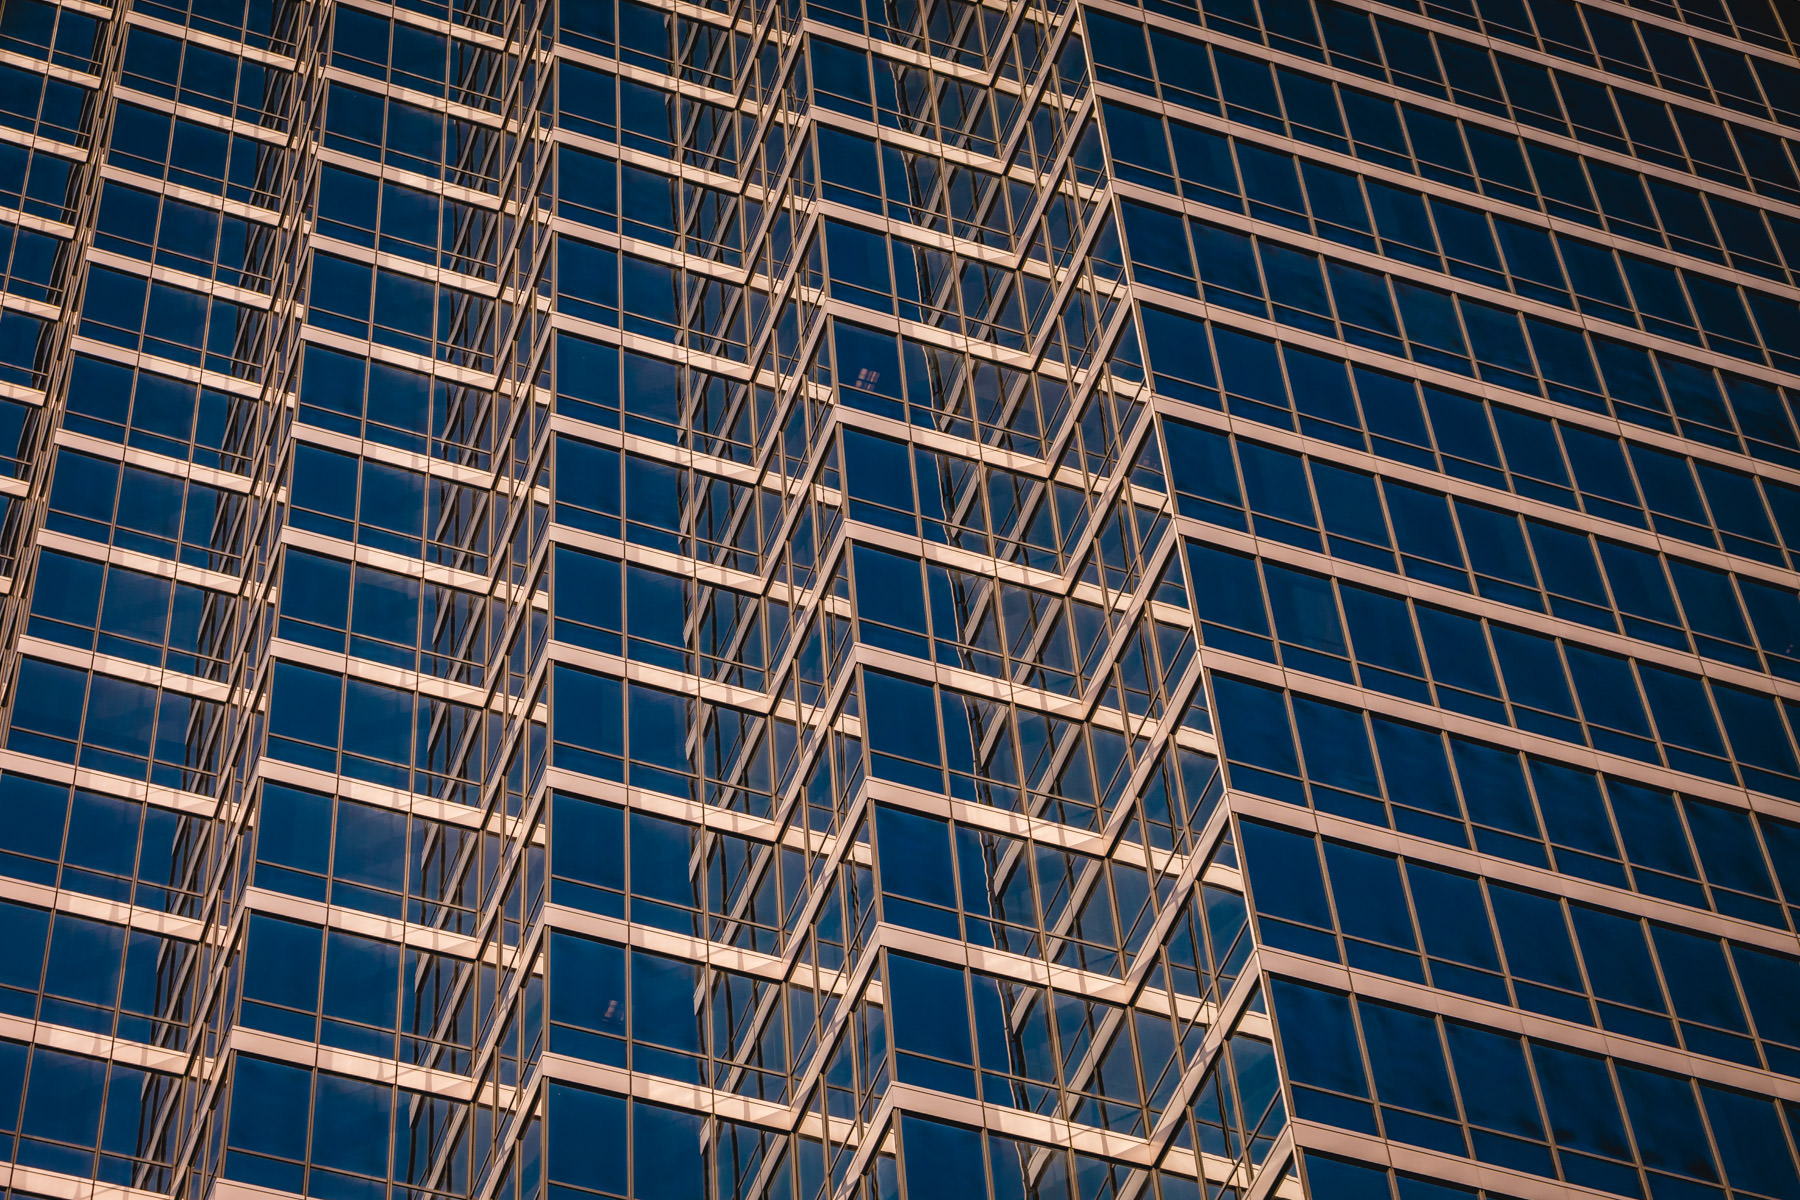 Abstract architectural detail of Downtown Dallas' Bank of America Plaza.